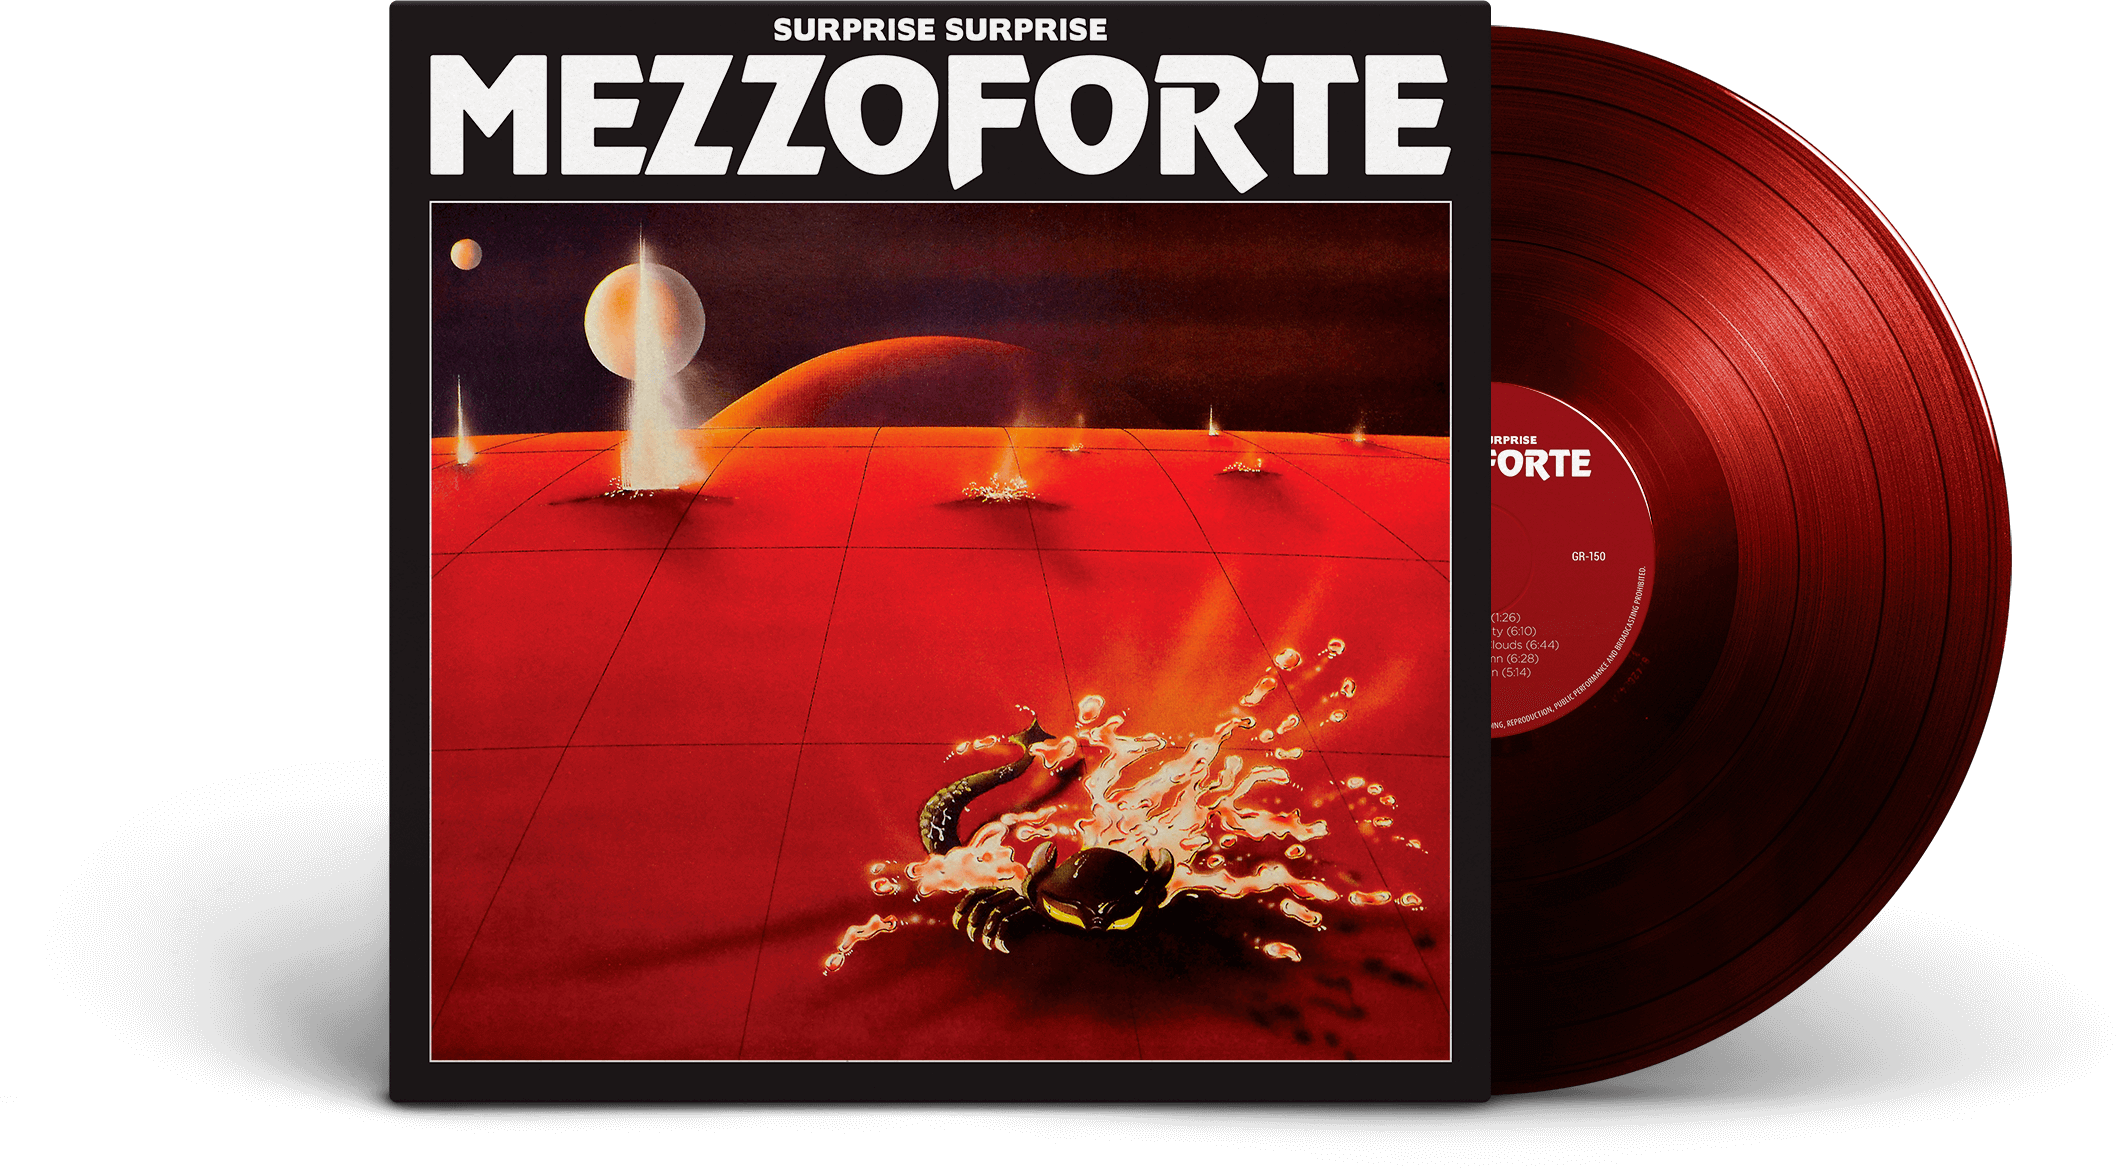 Mezzoforte – Surprise, Surprise_mockup